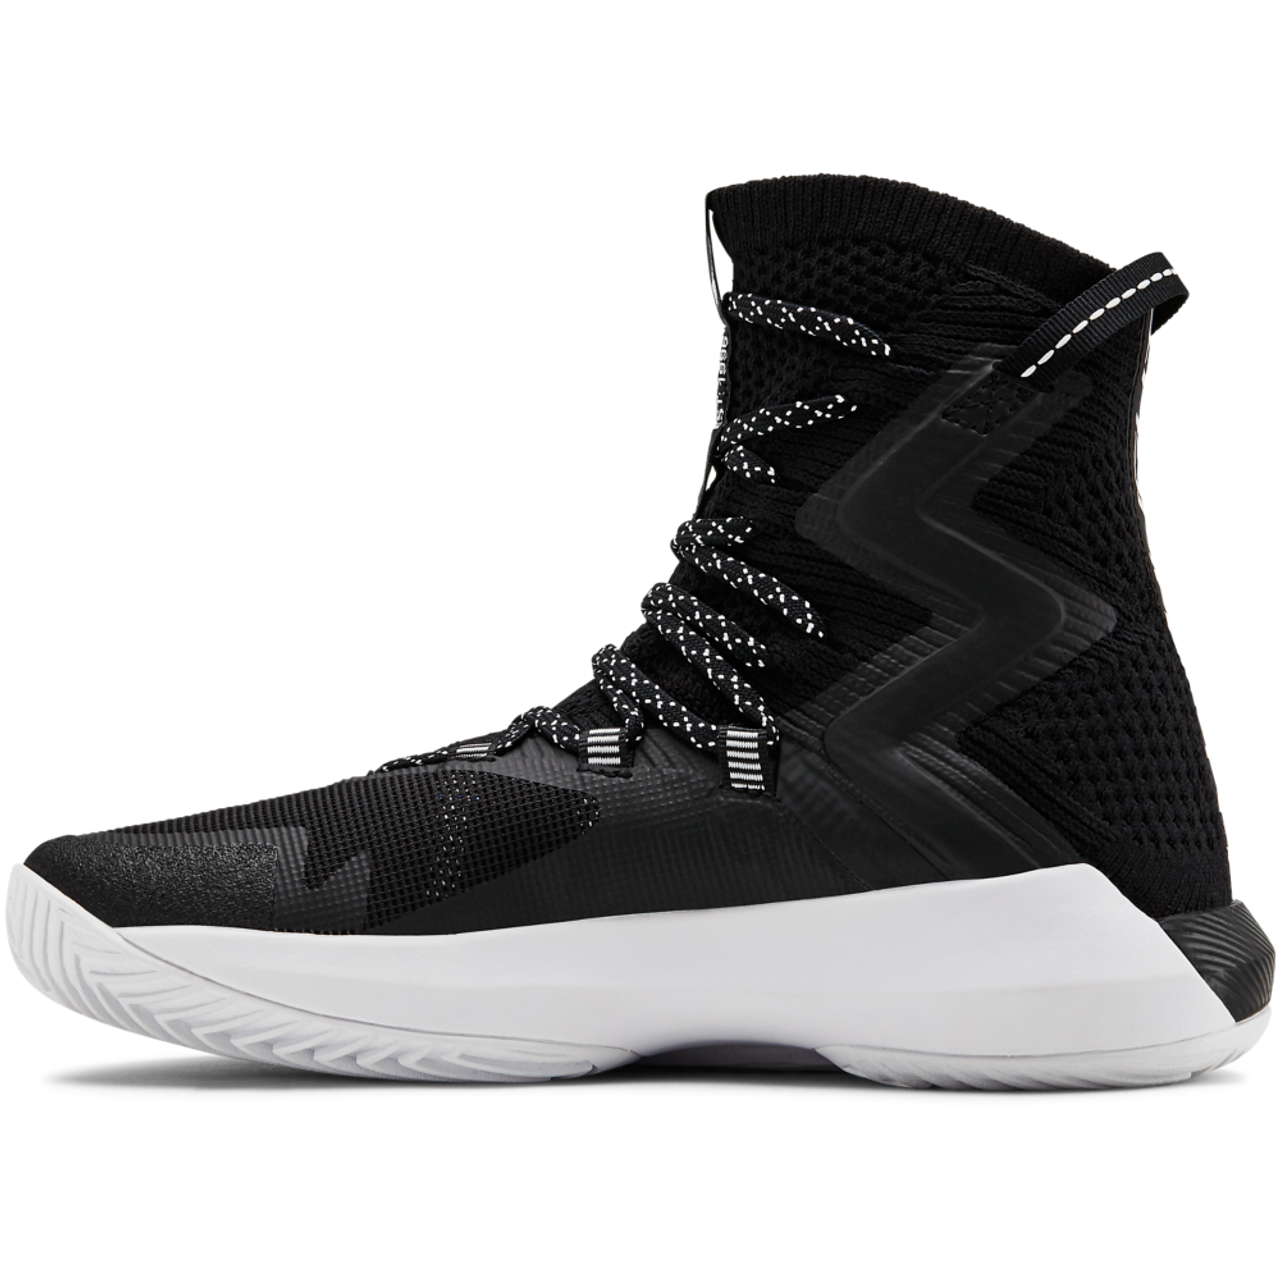 900fb4cd Under Armour Highlight Ace 2.0 Volleyball Shoe